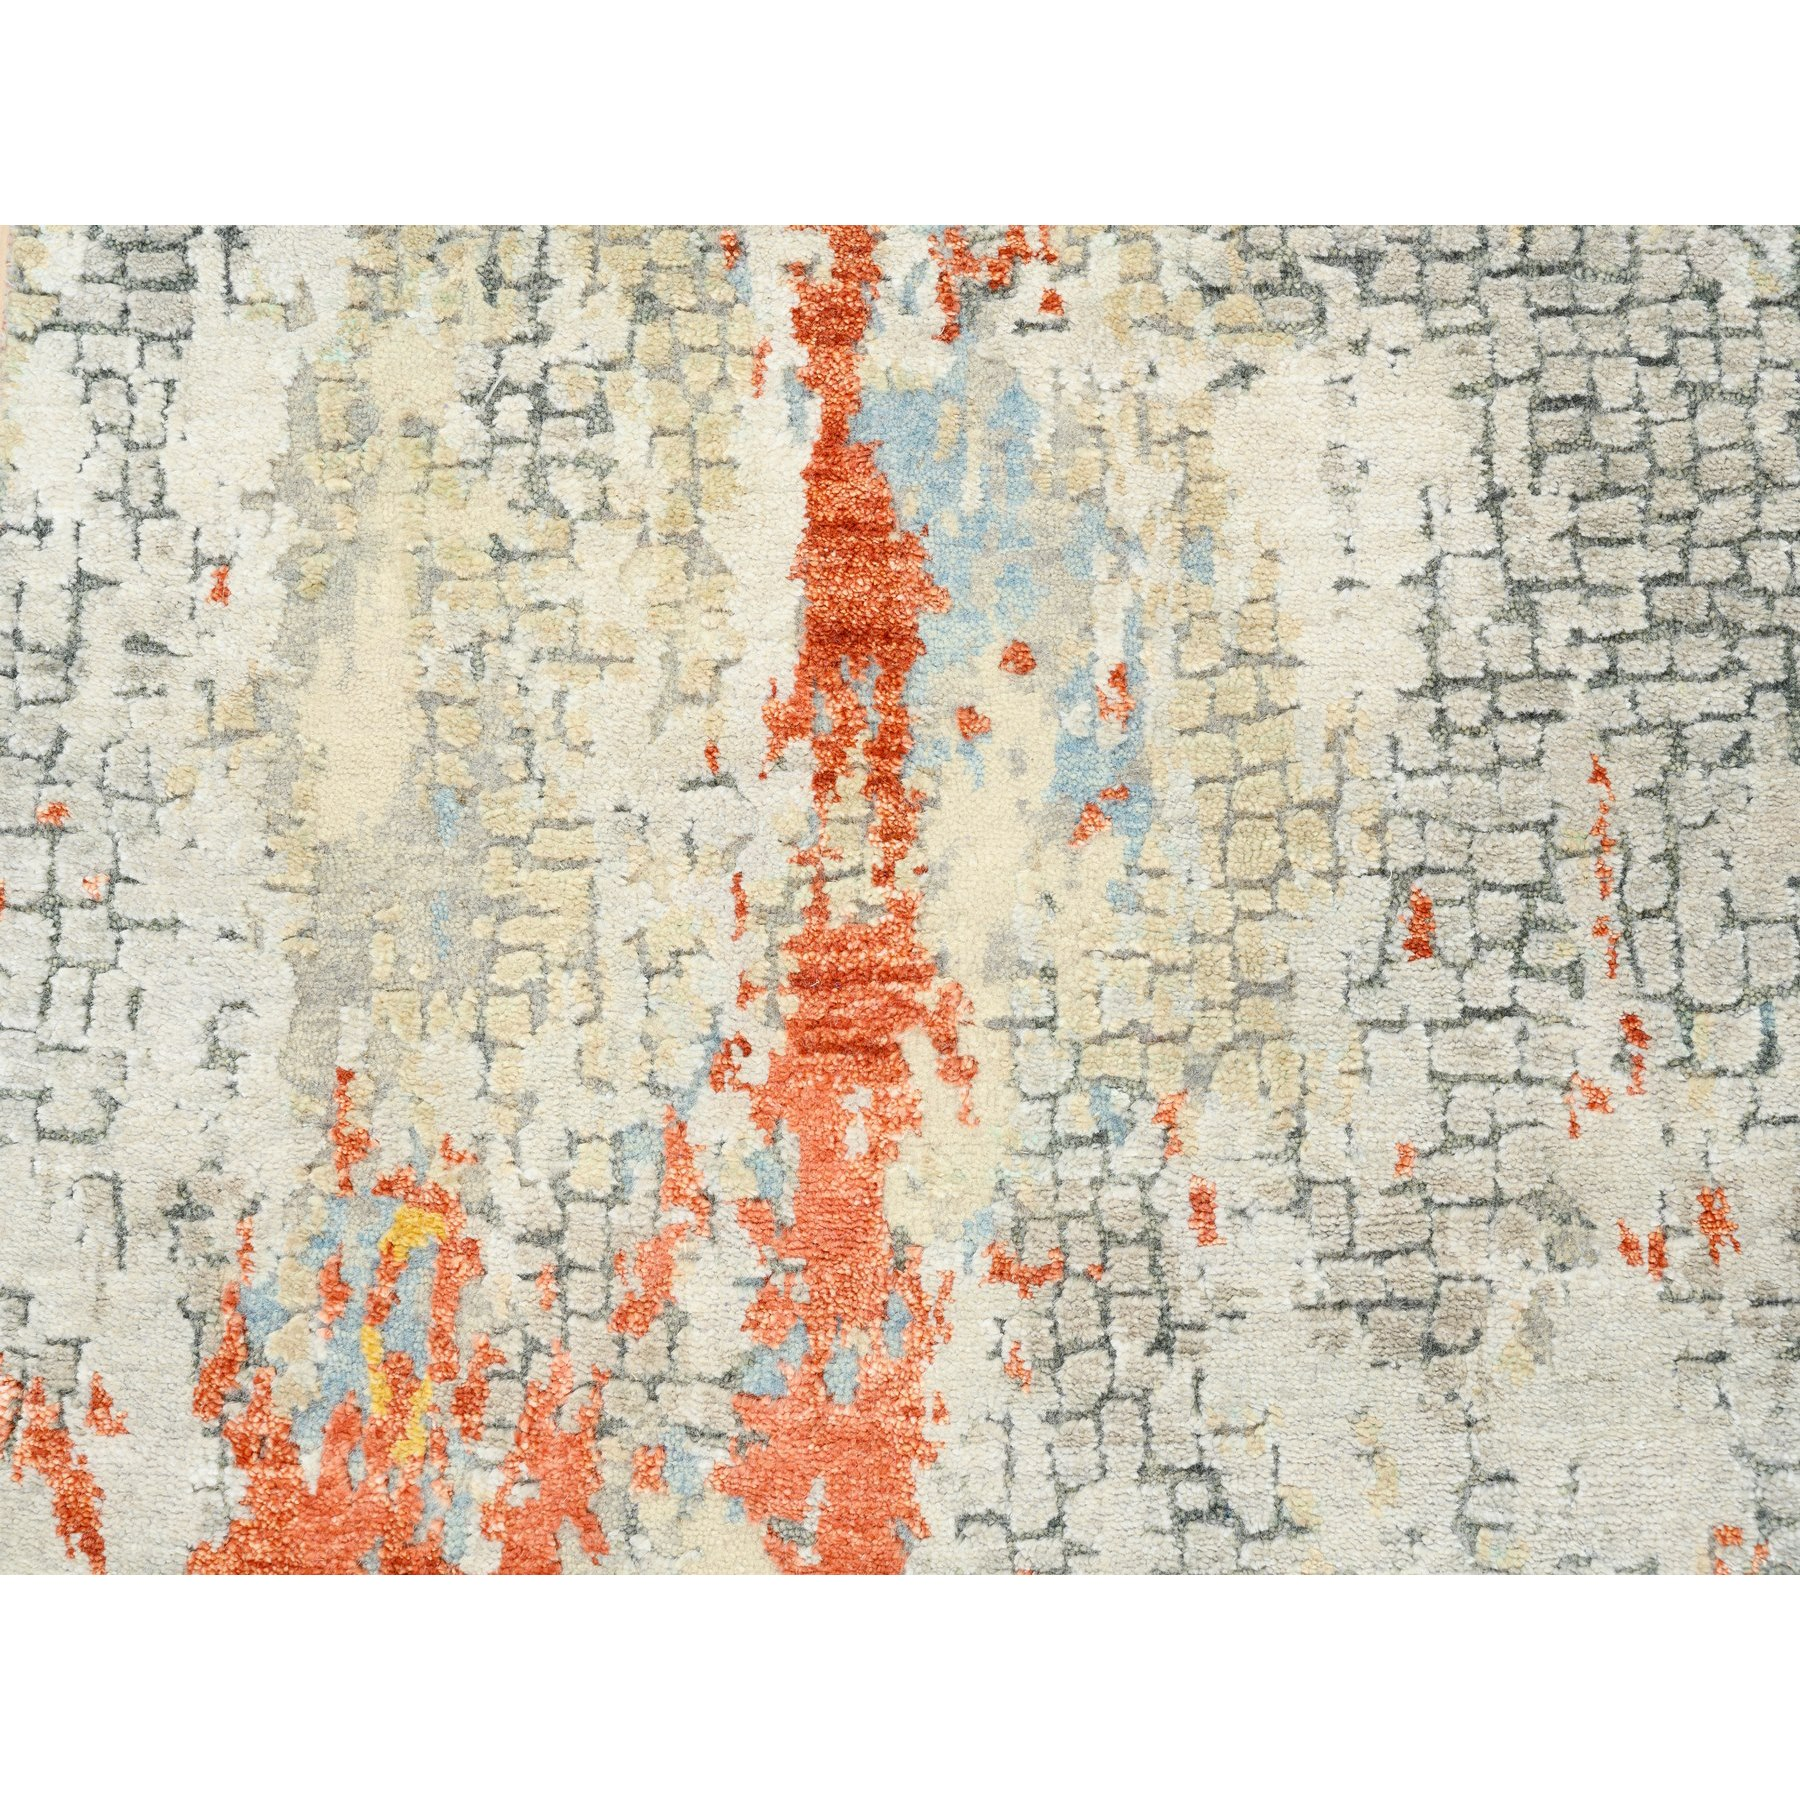 """4'1""""x12' Wool and Silk Abstract with Fire Mosaic Hand Knotted Runner Oriental Rug"""